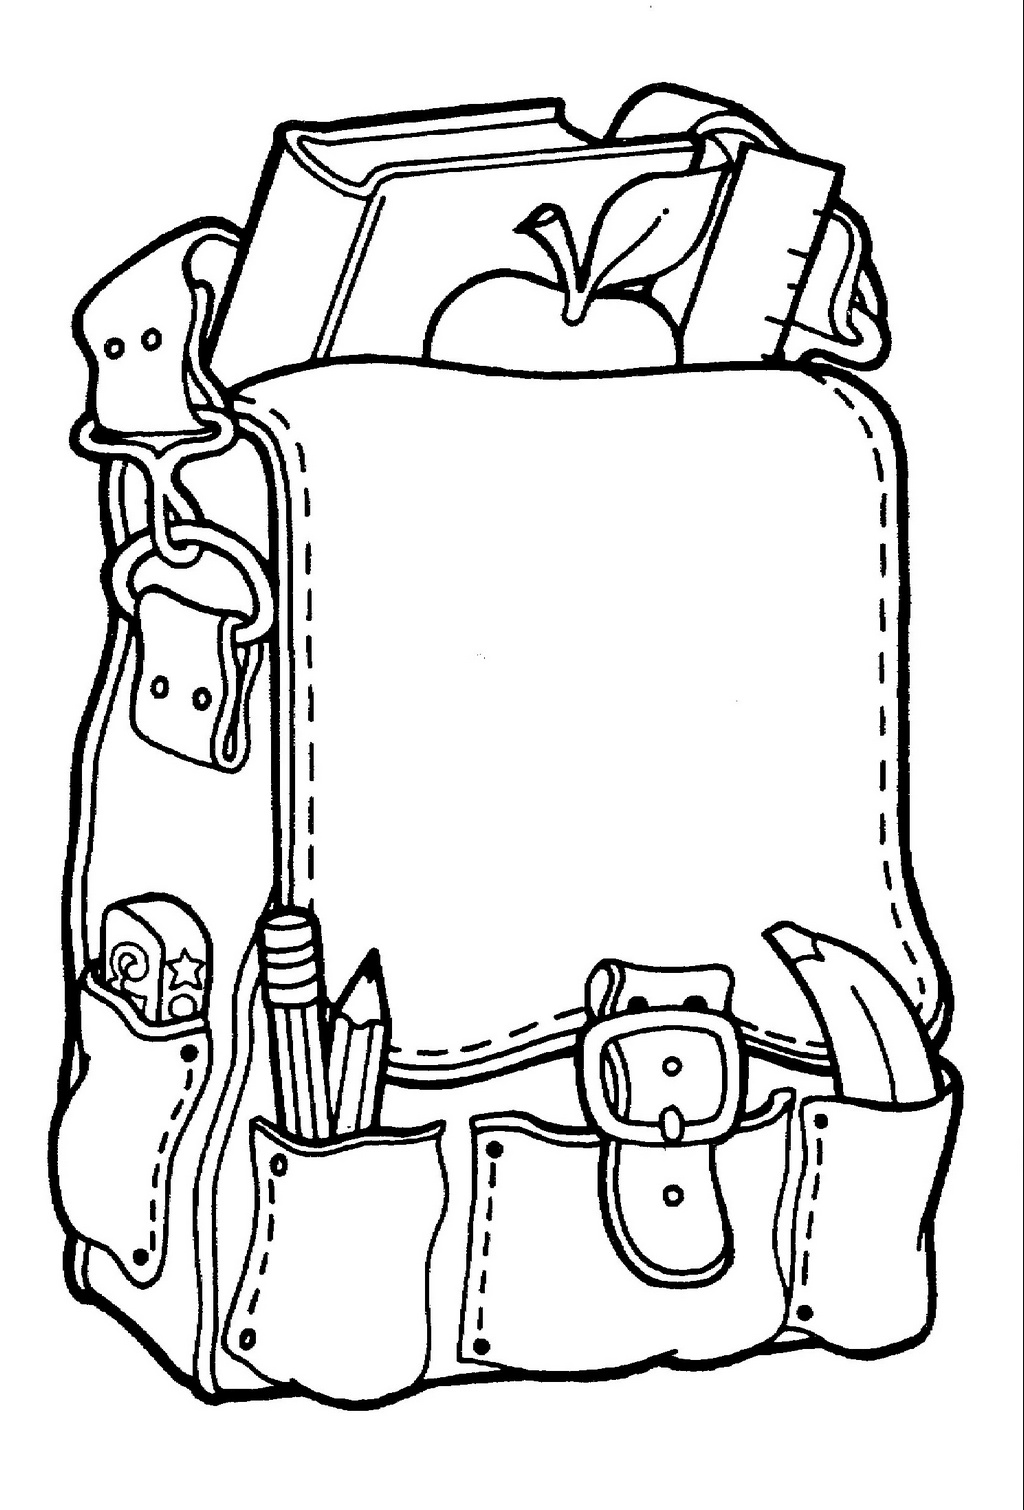 school bag backpack coloring picture